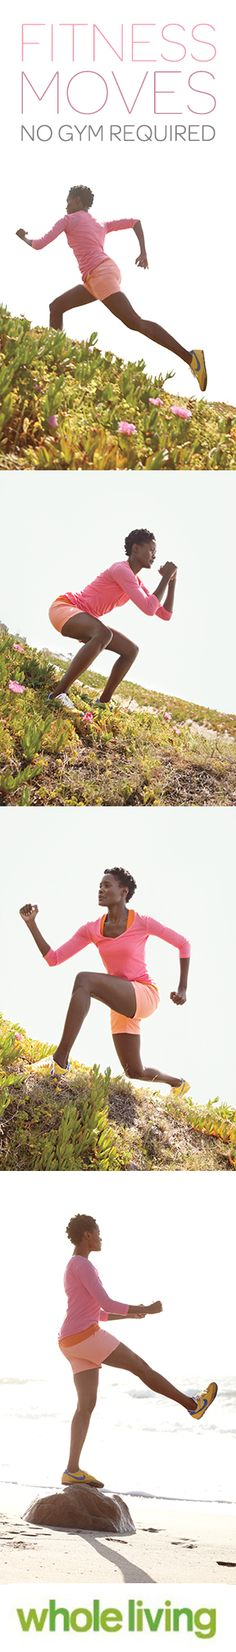 Don't want to go to the gym? No prob. Try these Outdoor Fitness Moves, Wholeliving.com